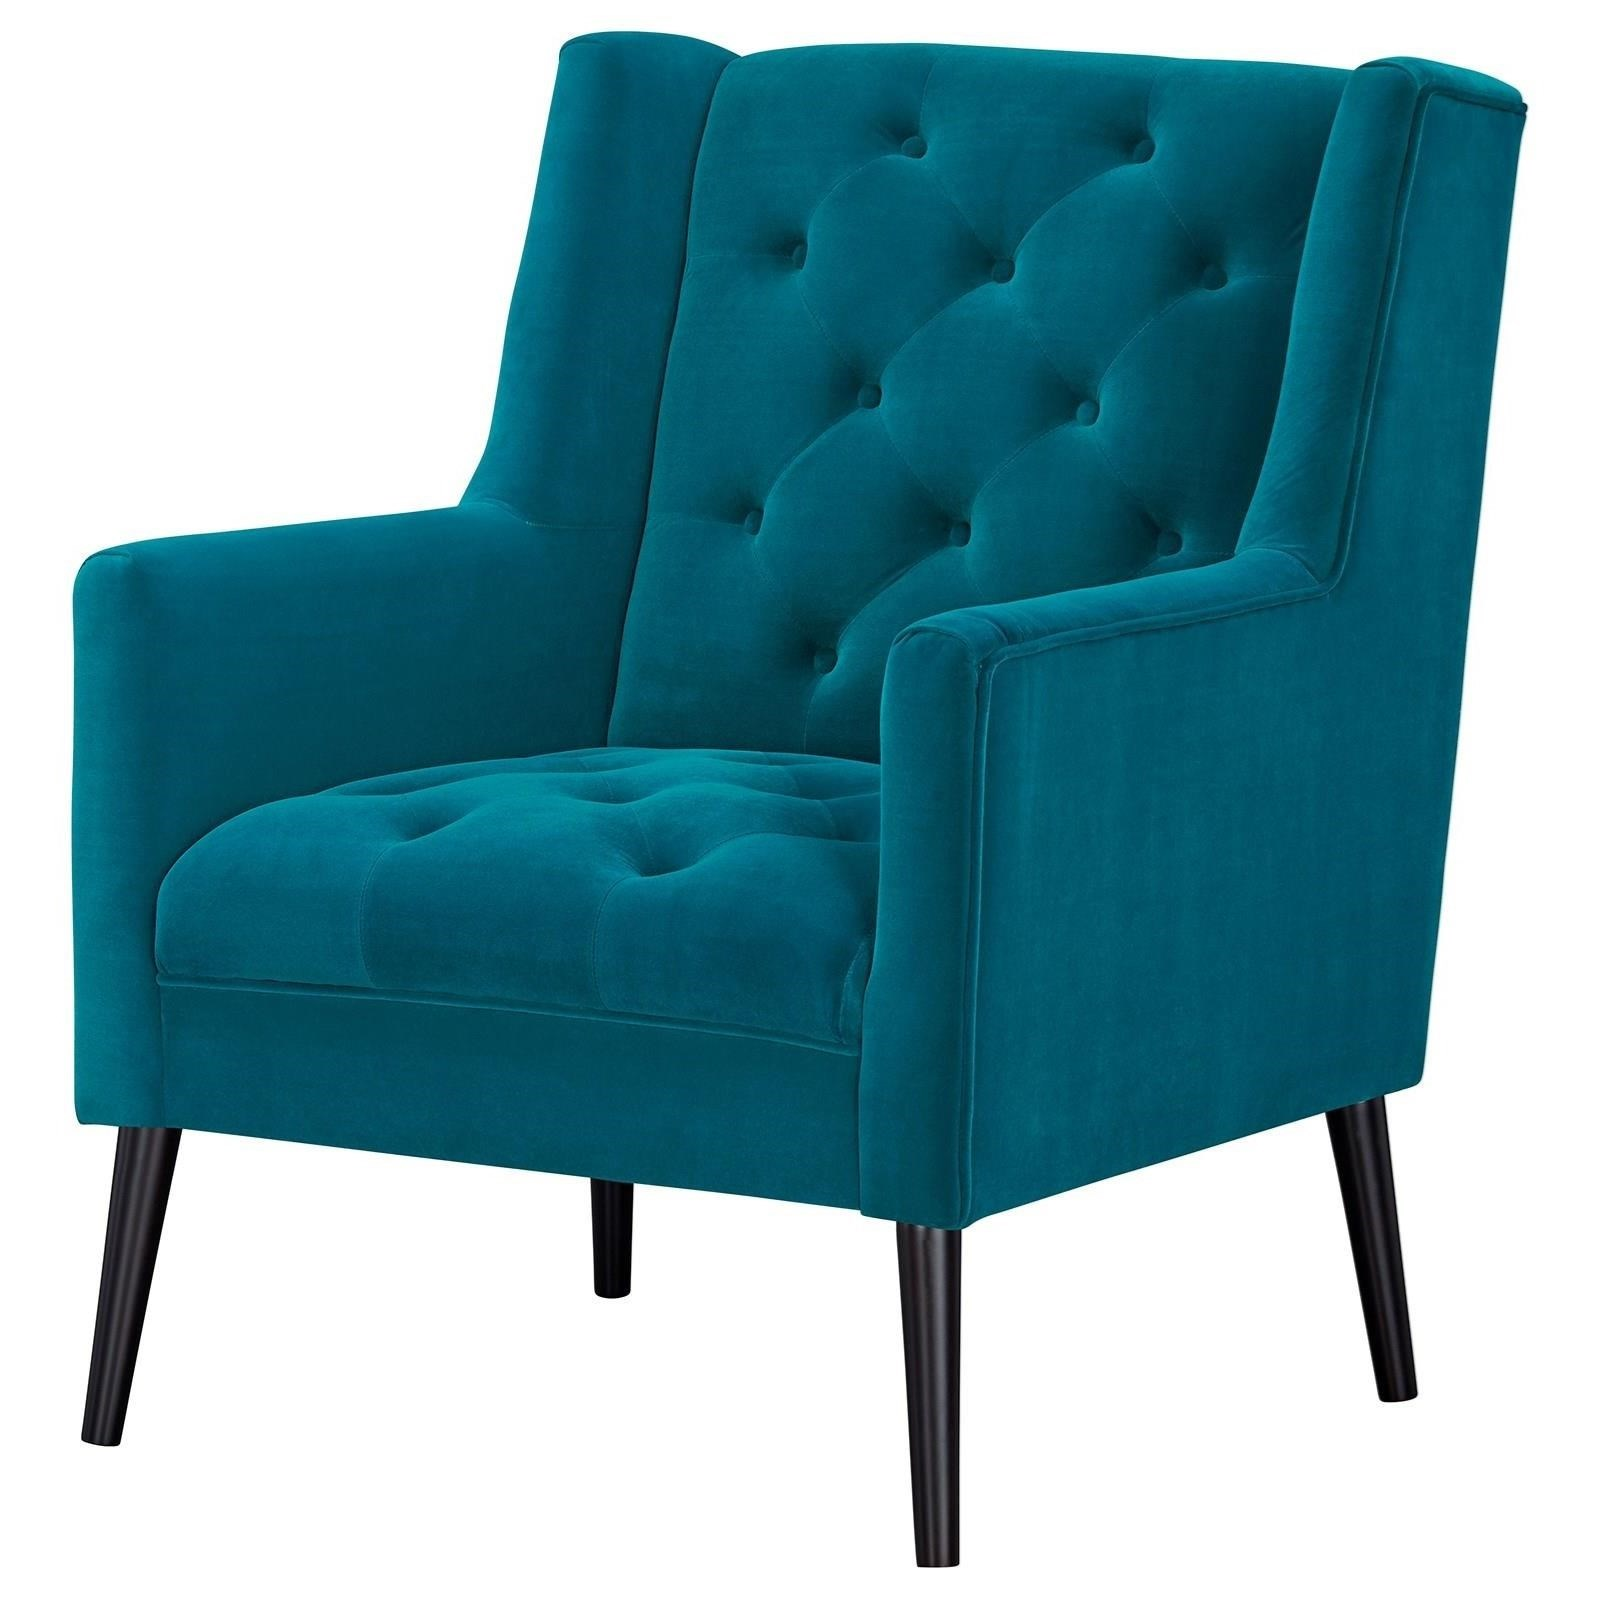 Miami Upholstered Chair by Standard Furniture at Furniture Fair - North Carolina